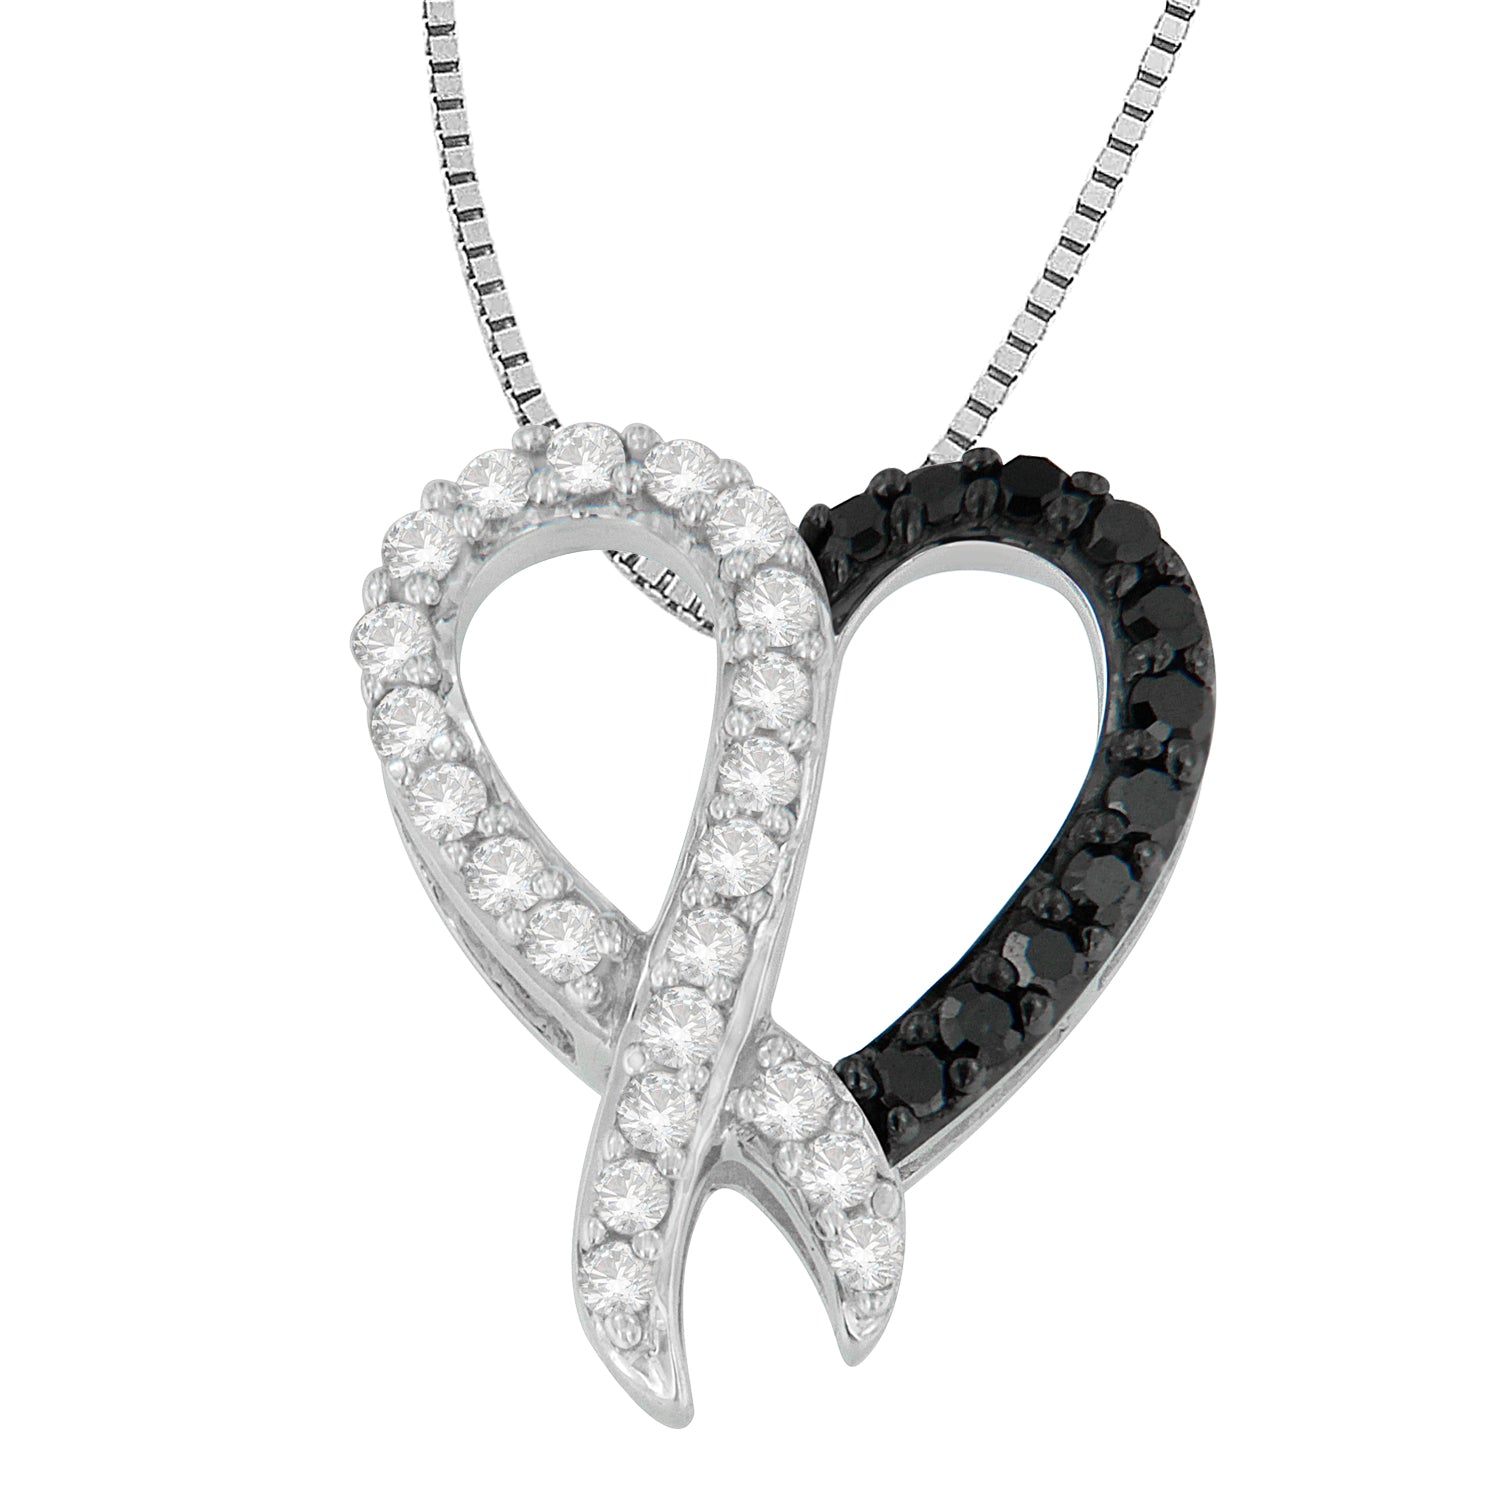 Diamond Heart Necklace by Liz Santos